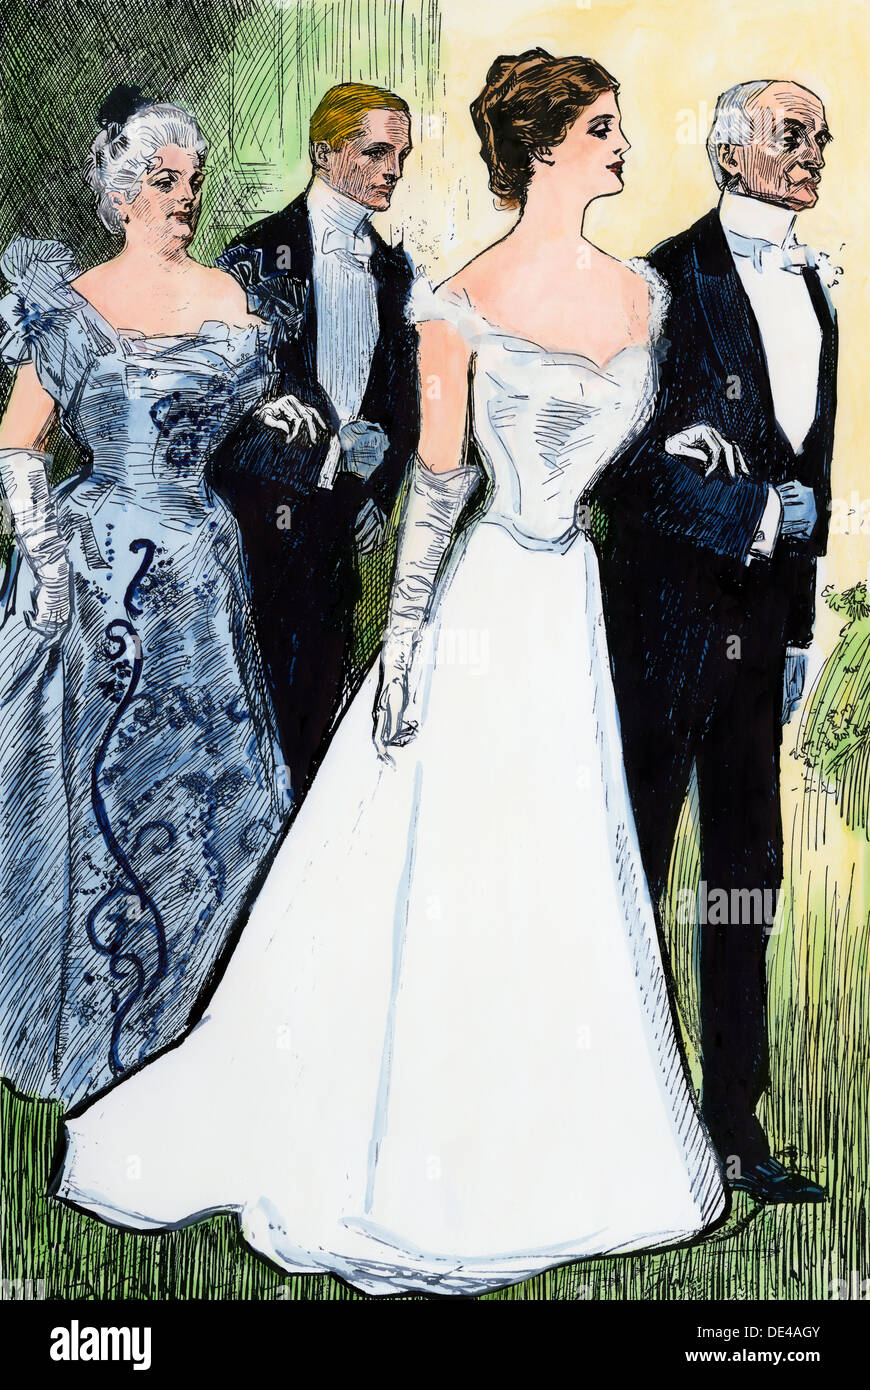 Debutante escorted by her father at her debut, circa 1900. Hand-colored woodcut of a Charles Dana Gibson illustration - Stock Image